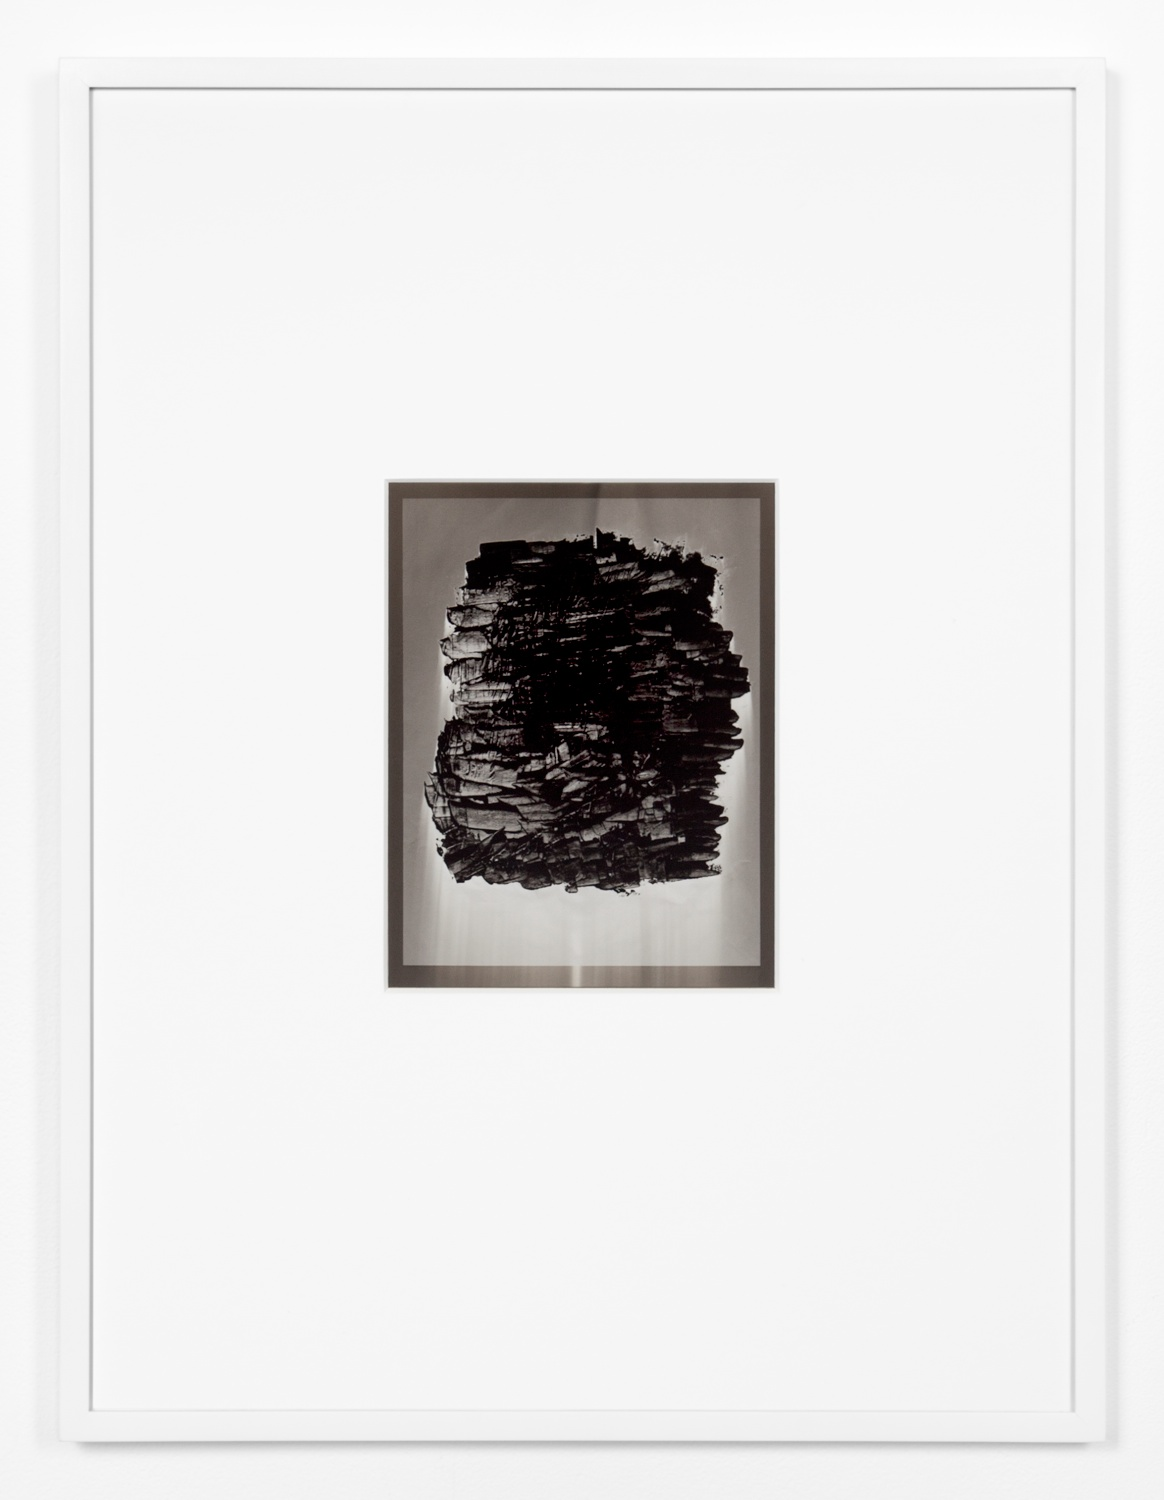 Anthony Pearson  Untitled (Solarization)  2012 Framed solarized silver gelatin photograph 17h x 12 ¾w x 1d in AP317